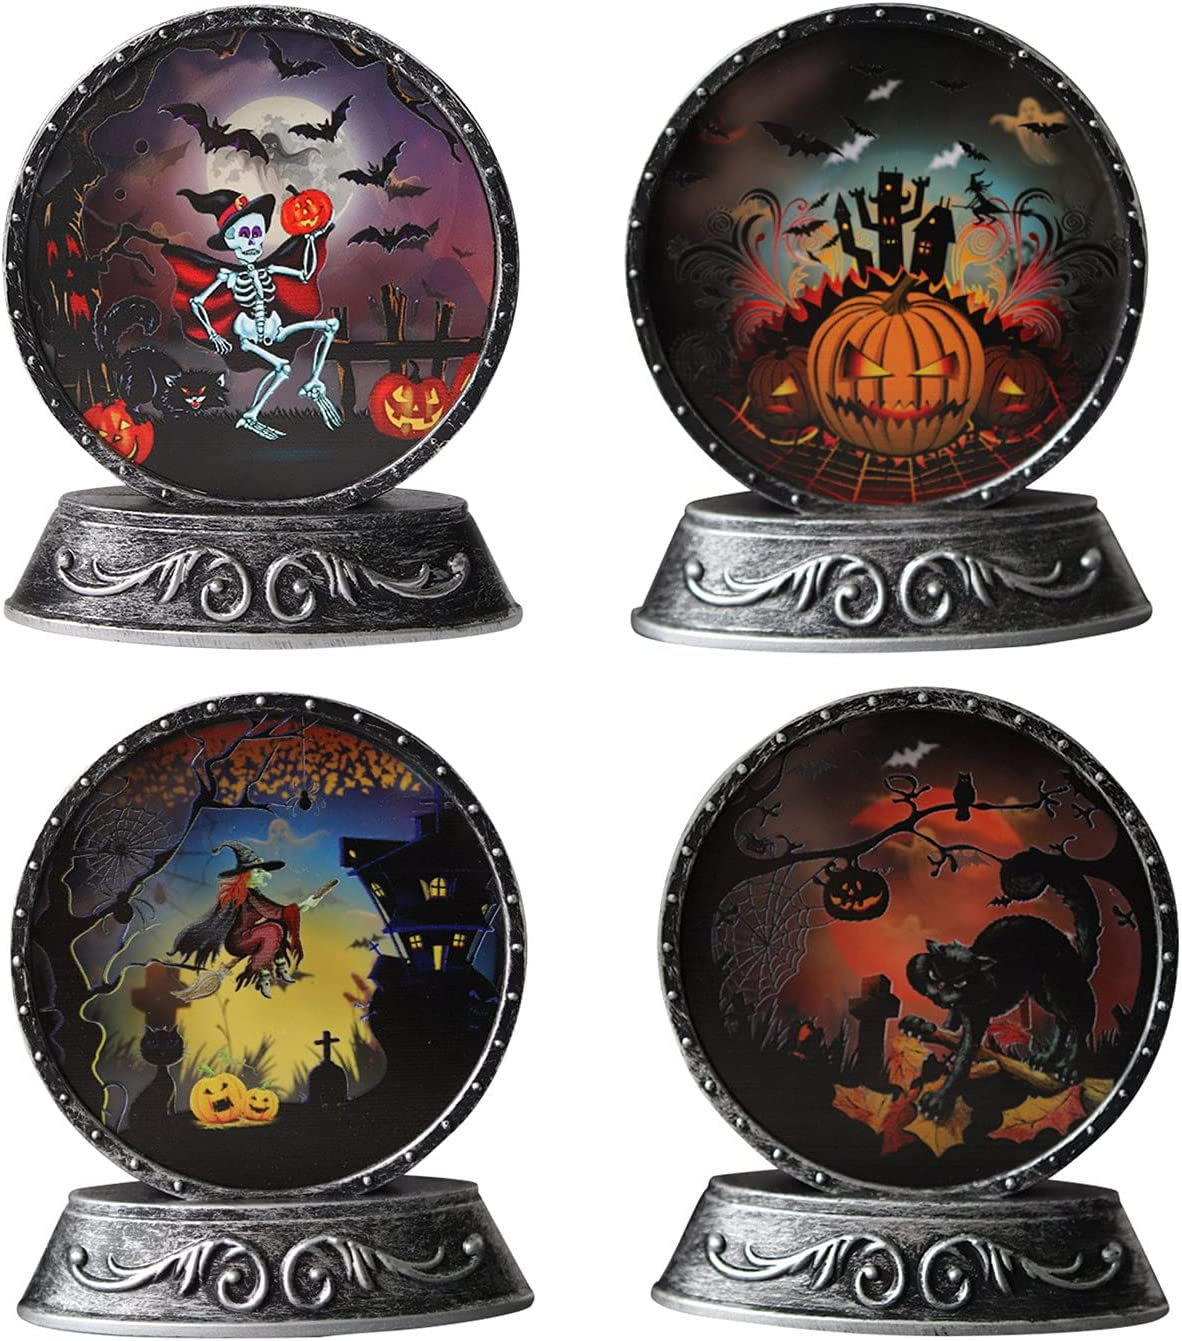 AODY 4pcs Party Decorations Max 86% OFF Light Co Retro Craft Props Special price Halloween